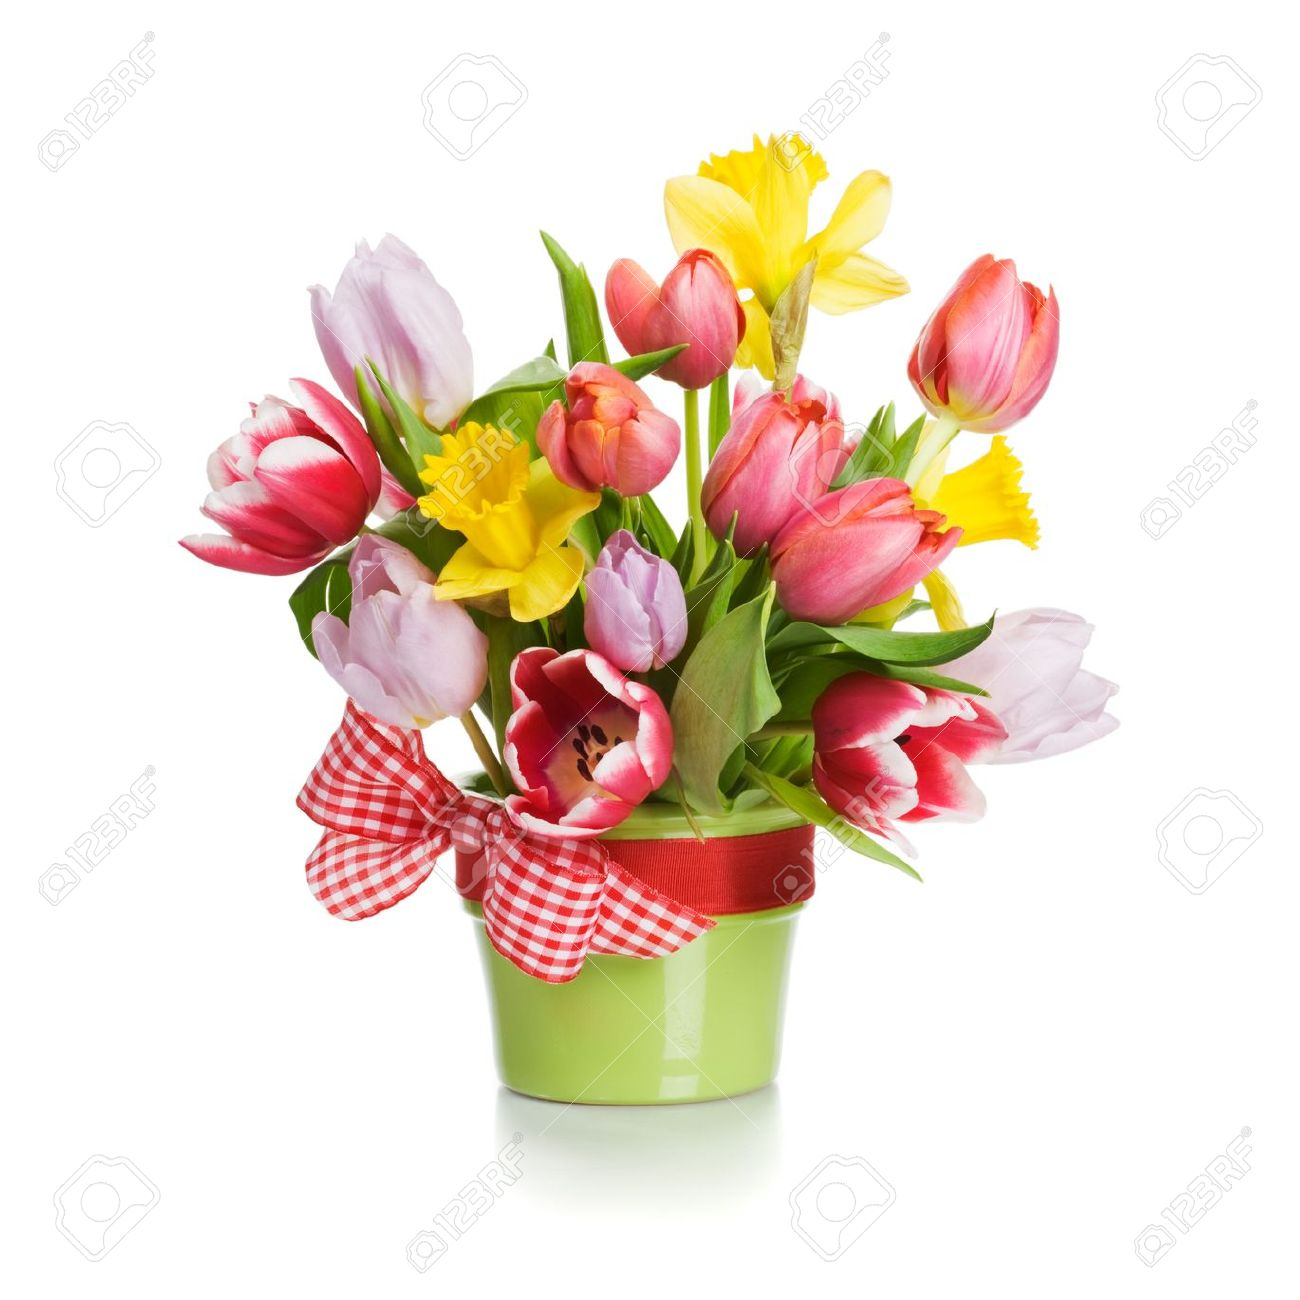 Green Flower Pot With Spring Flowers On White Background Stock Photo